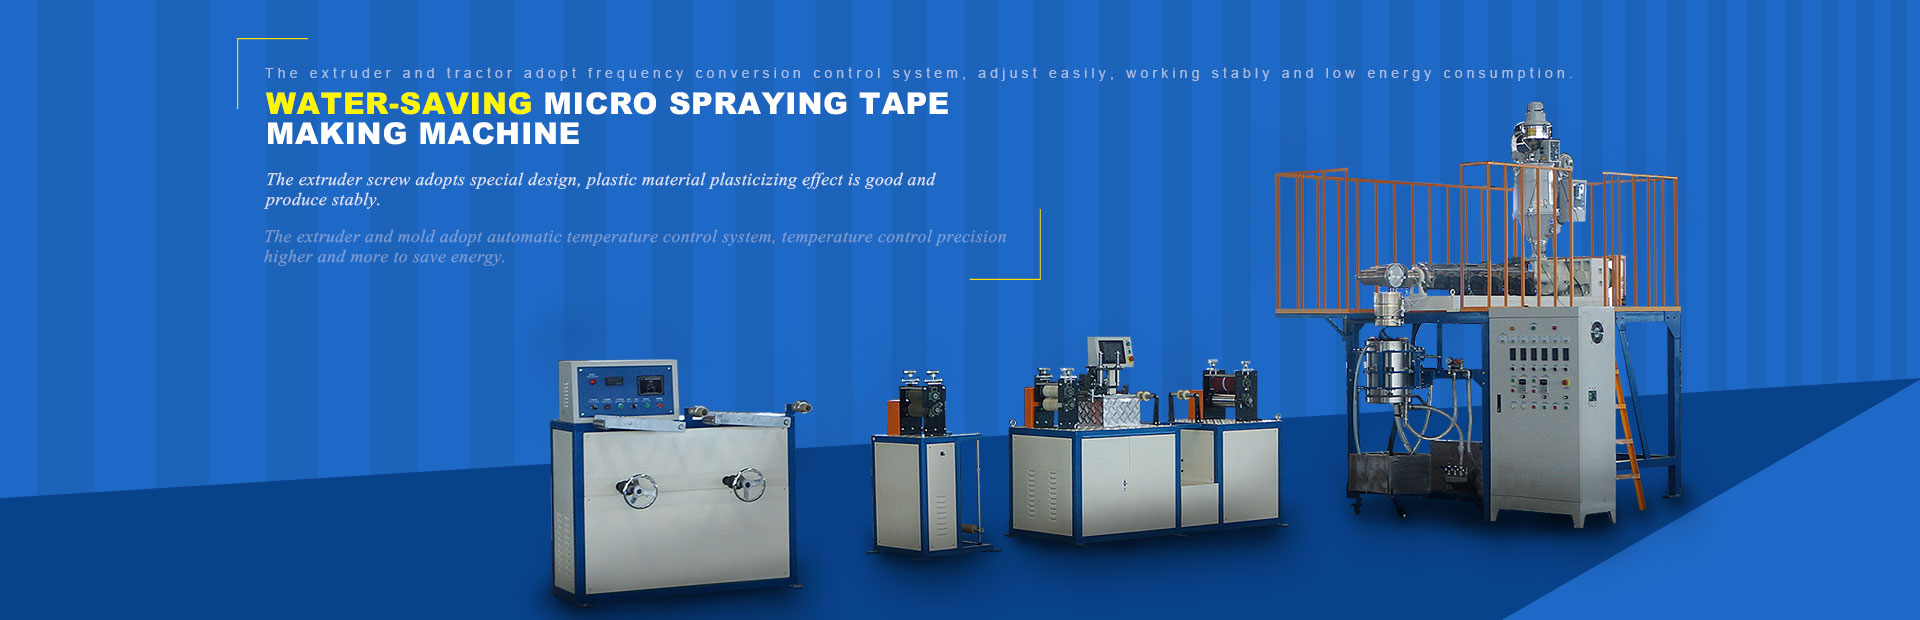 micro spraying water tape making machine